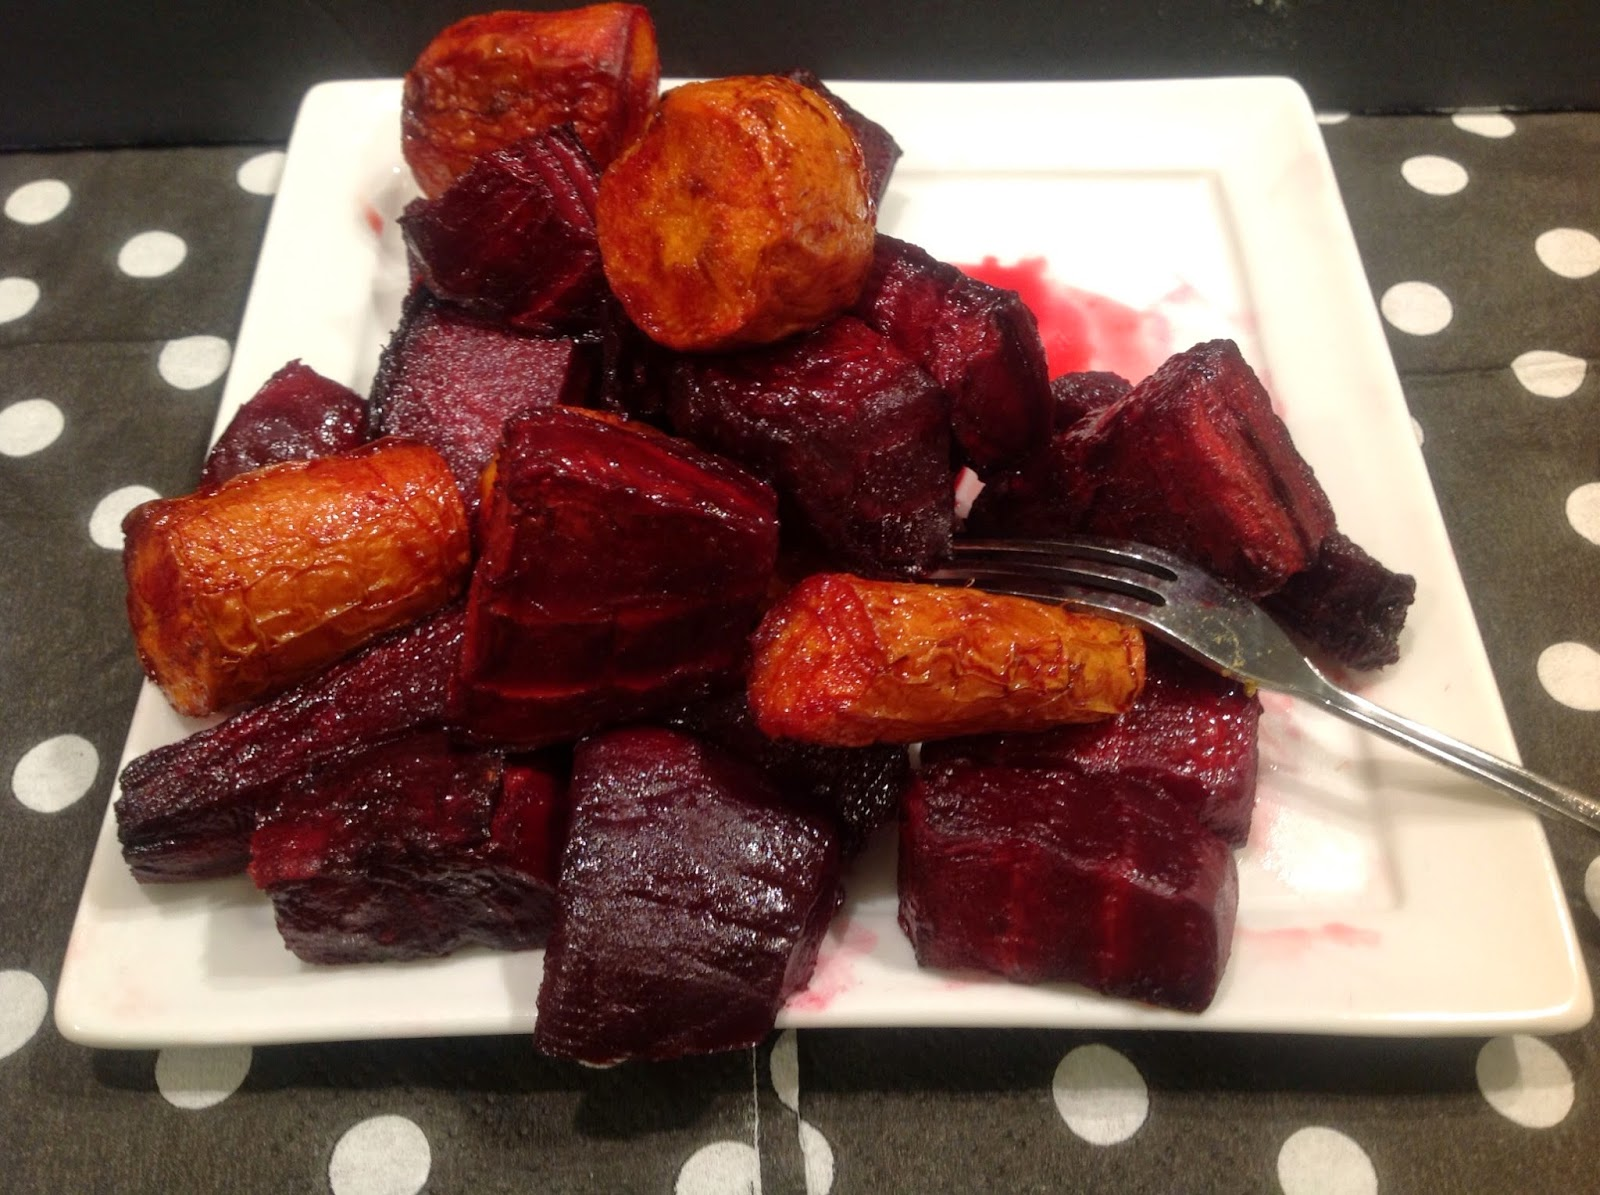 roasted beets and carrots in a vinegar glaze